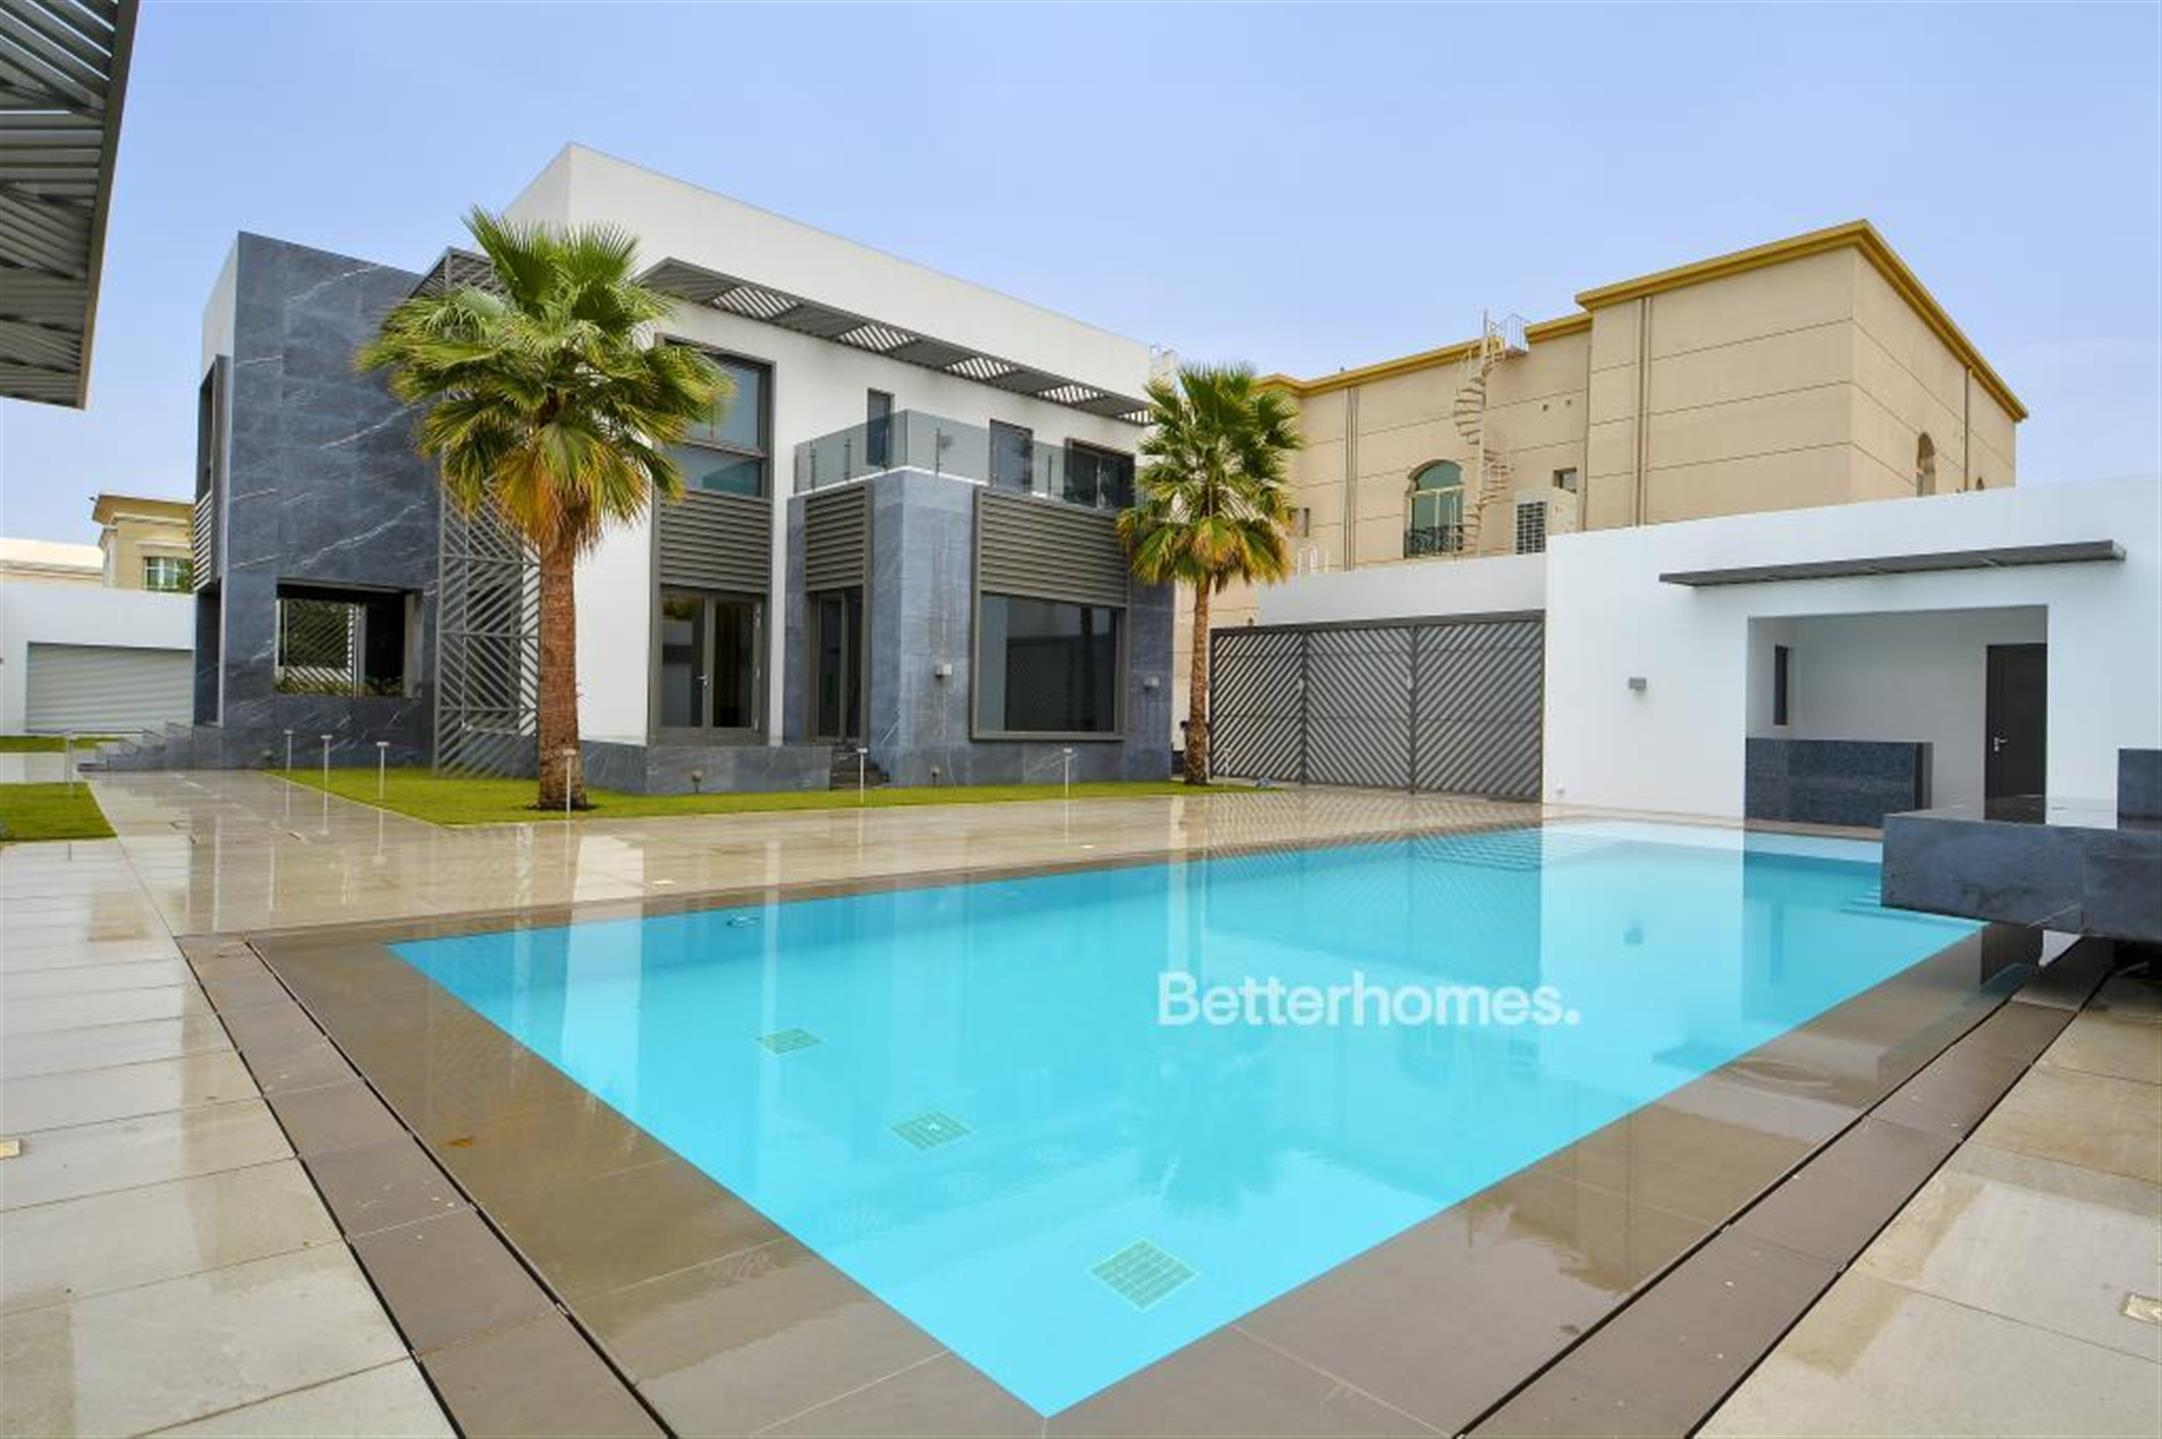 Main Photo of a 5 bedroom End of Terrace House for sale